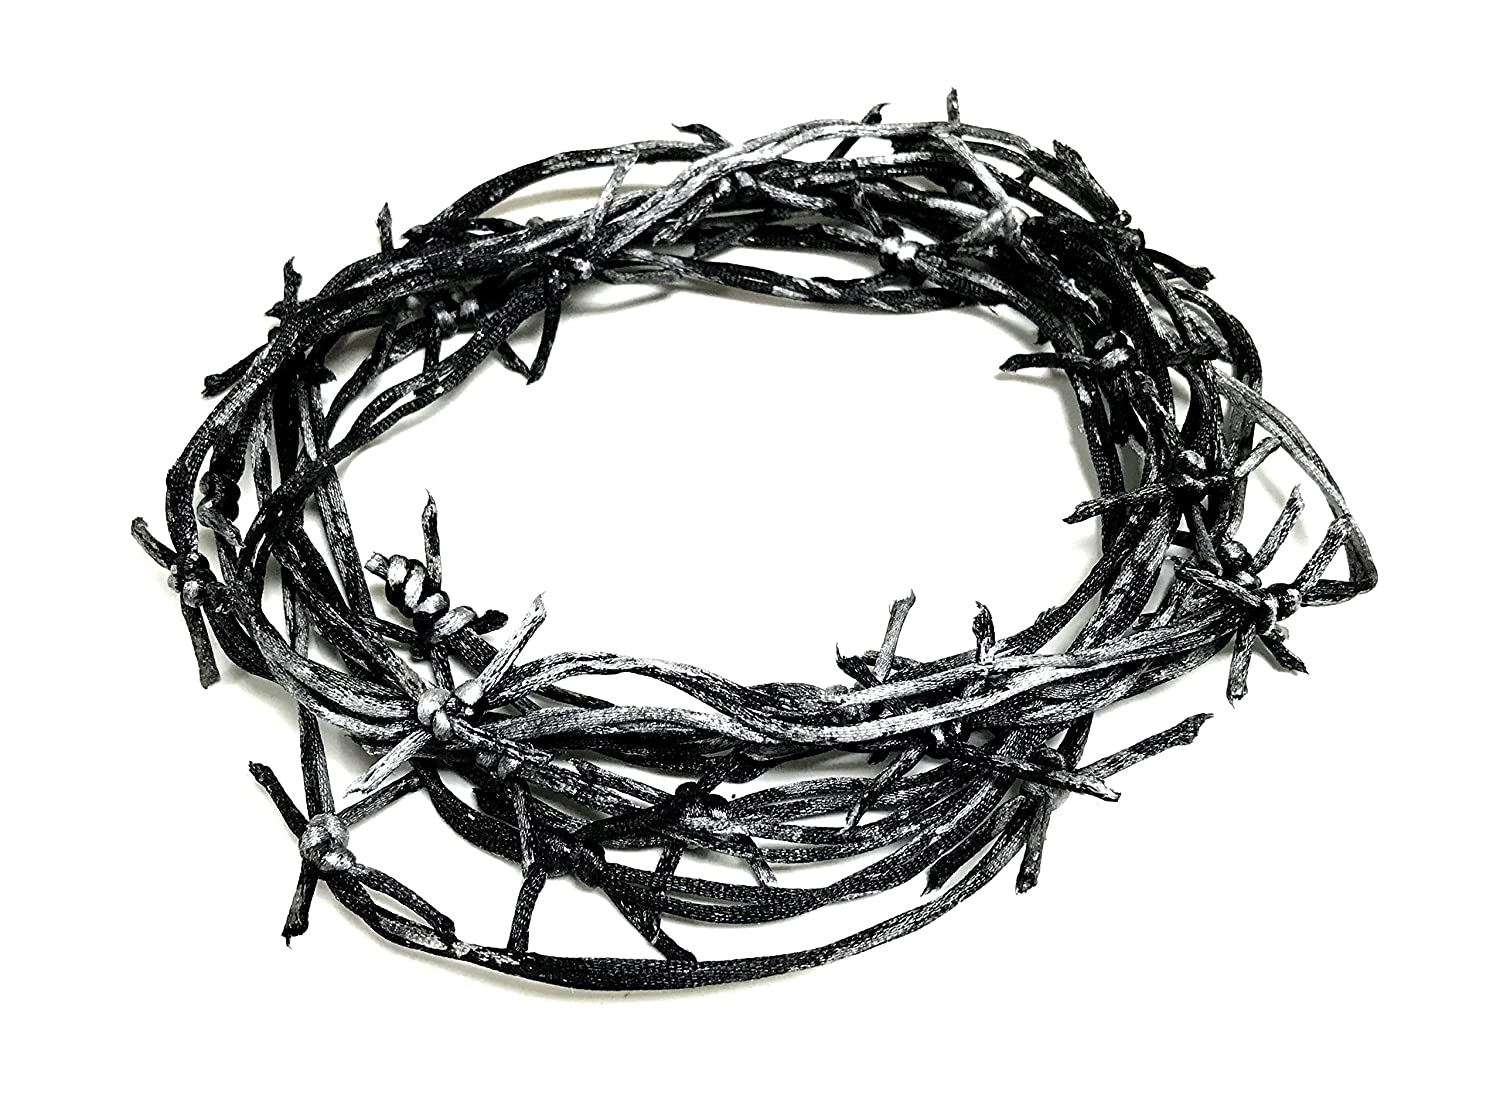 Amazon.com: NewRuleFX Actor-Safe Fake Prop Barbed Wire 12\' Length ...